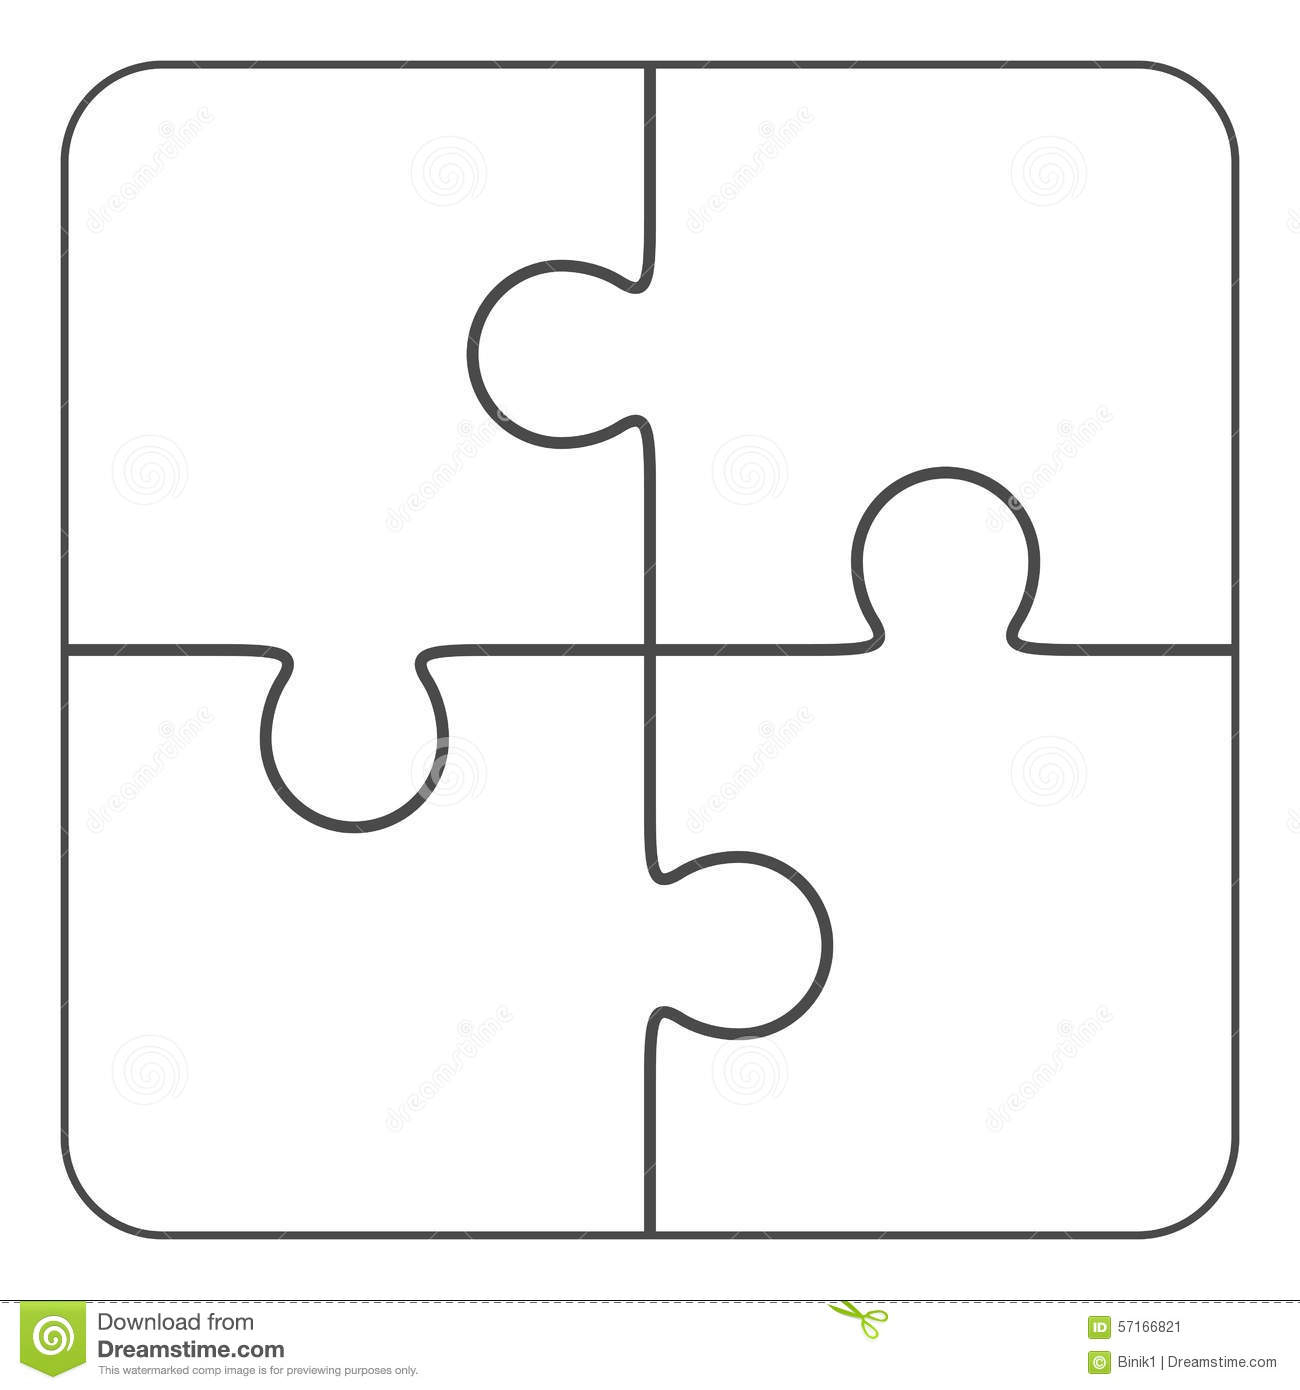 Jigsaw Puzzle Blank 2X2, Four Pieces Stock Illustration - 4 Piece Printable Puzzle